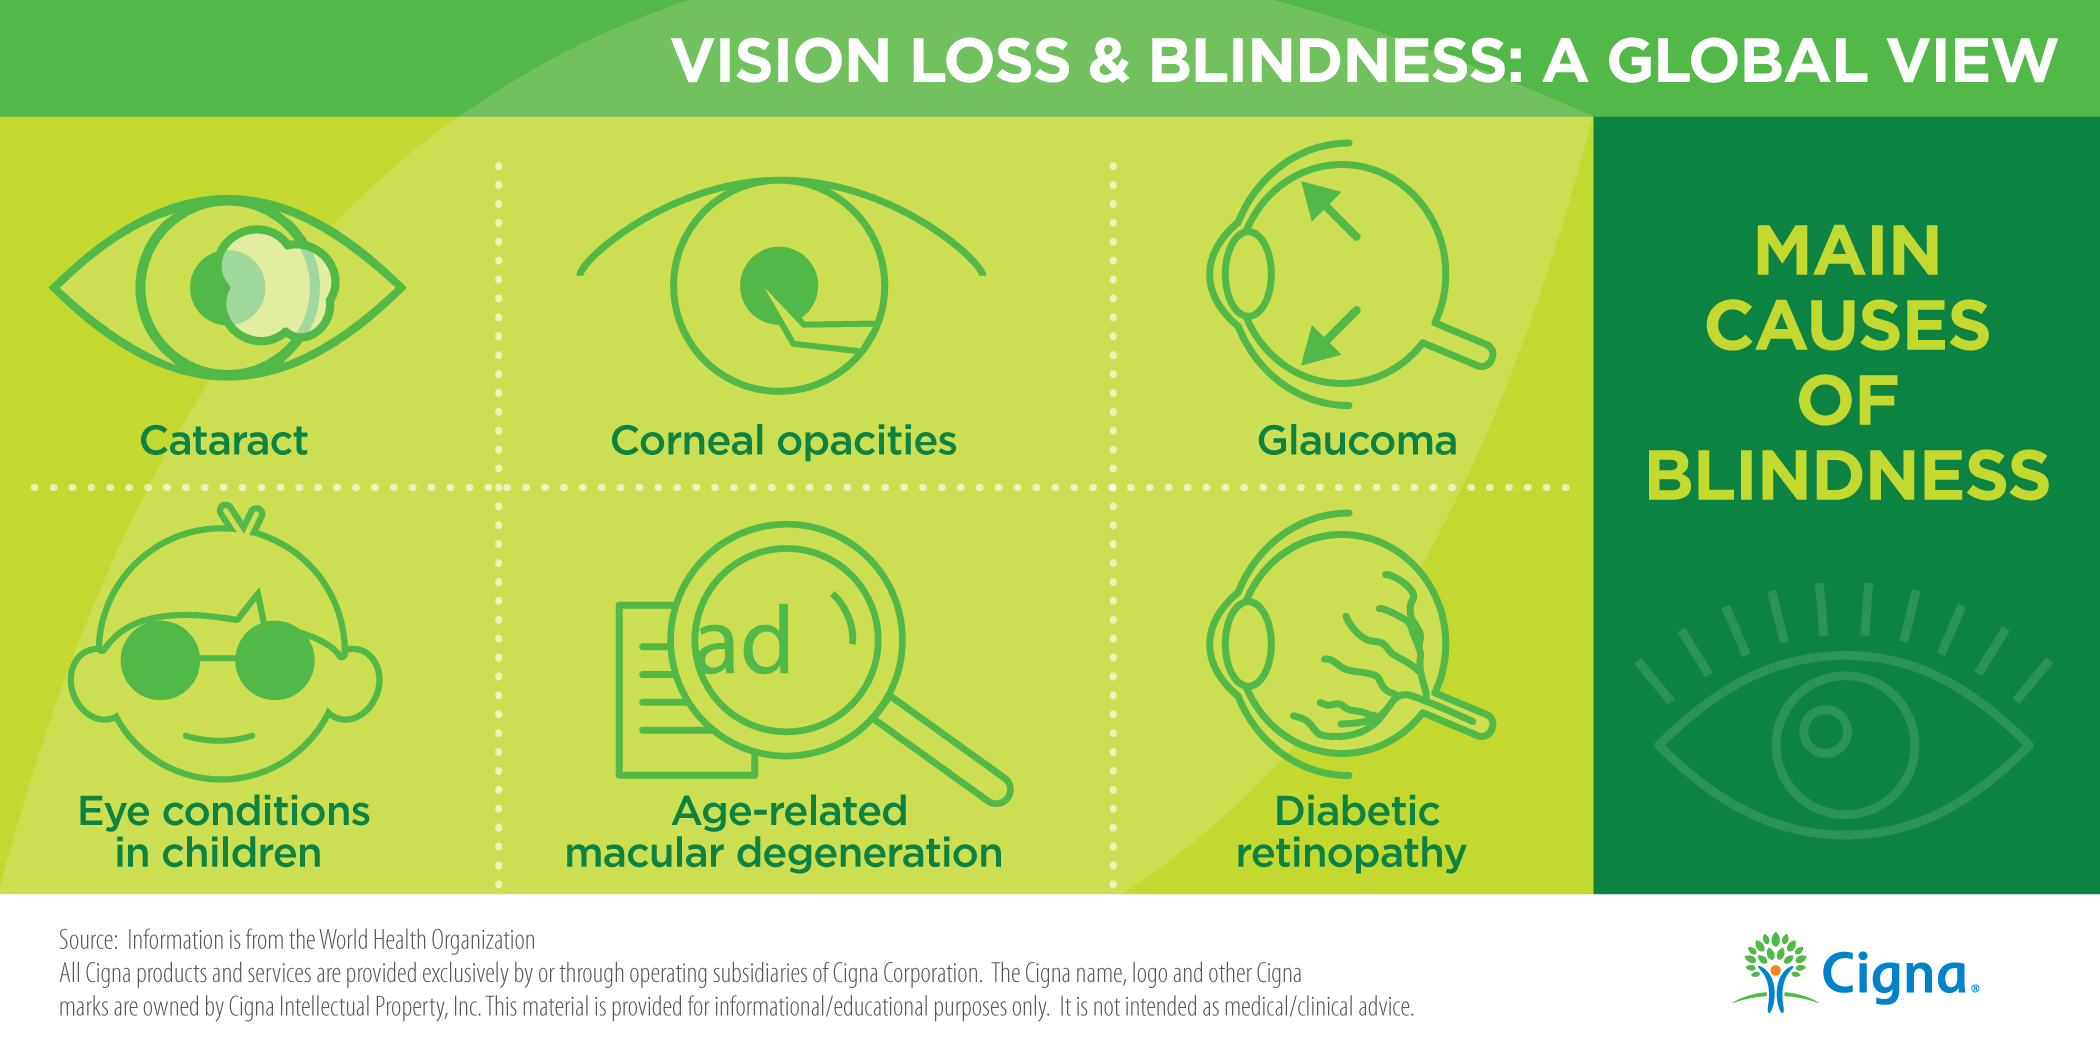 Main Causes of Blindness Infographic